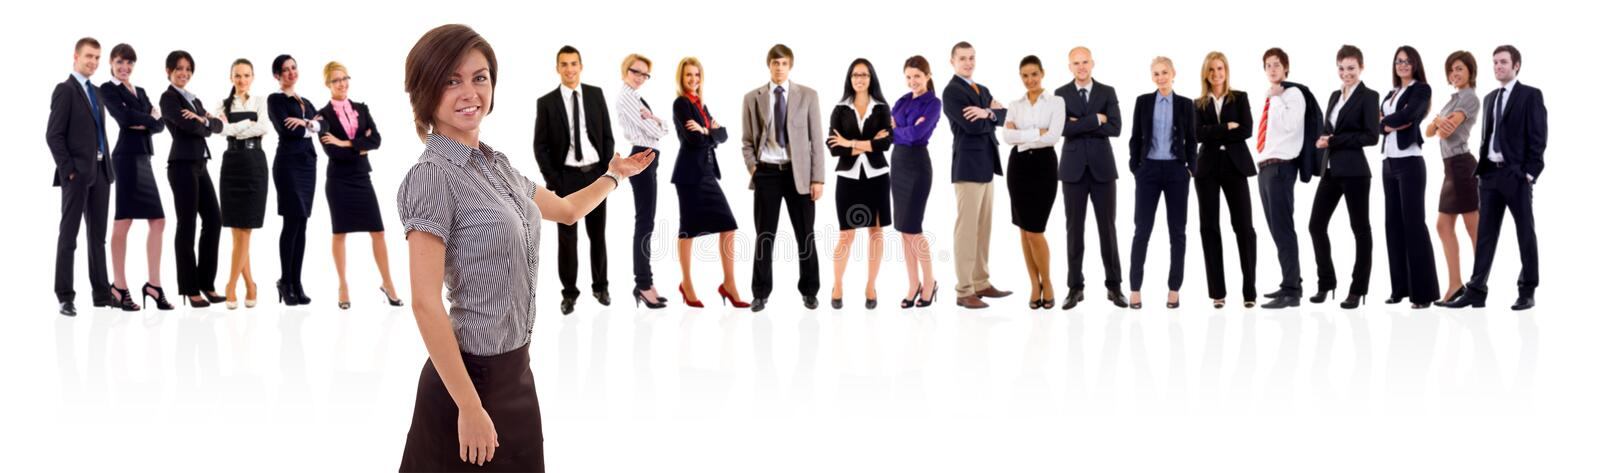 Woman presenting her business team stock photography